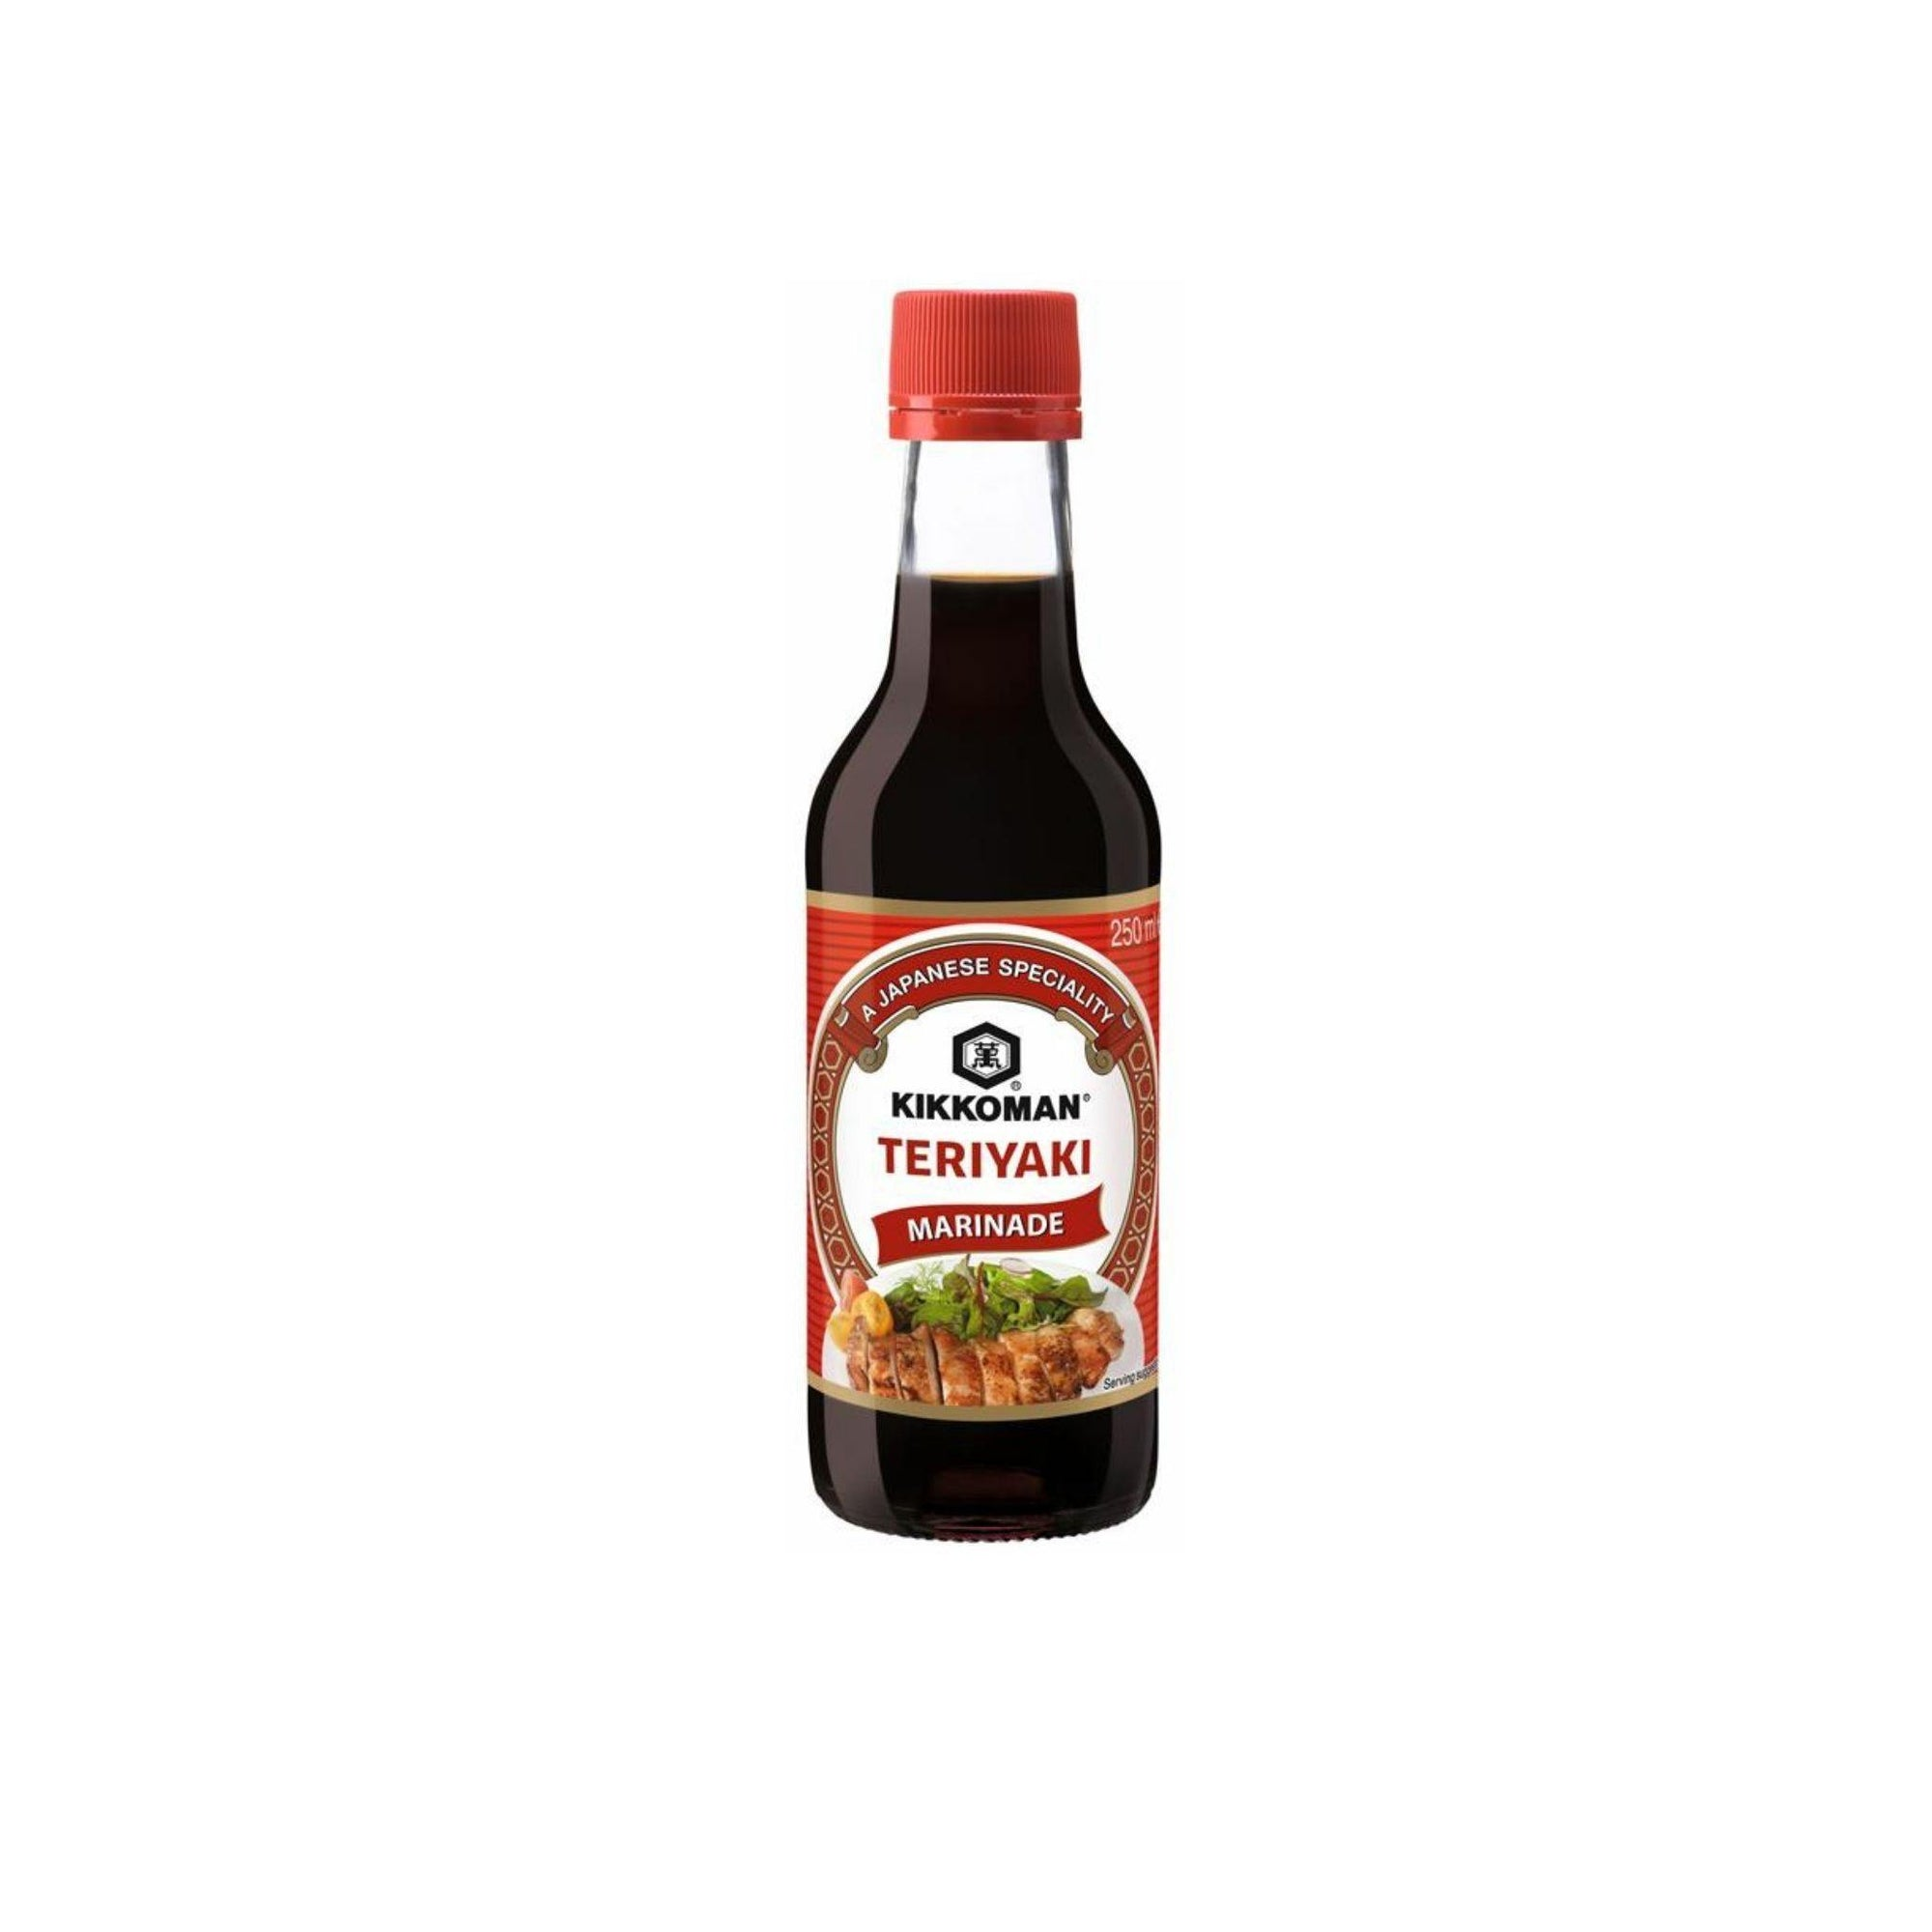 Kikkoman Teriyaki Sauce 250ml - Asian Harvest